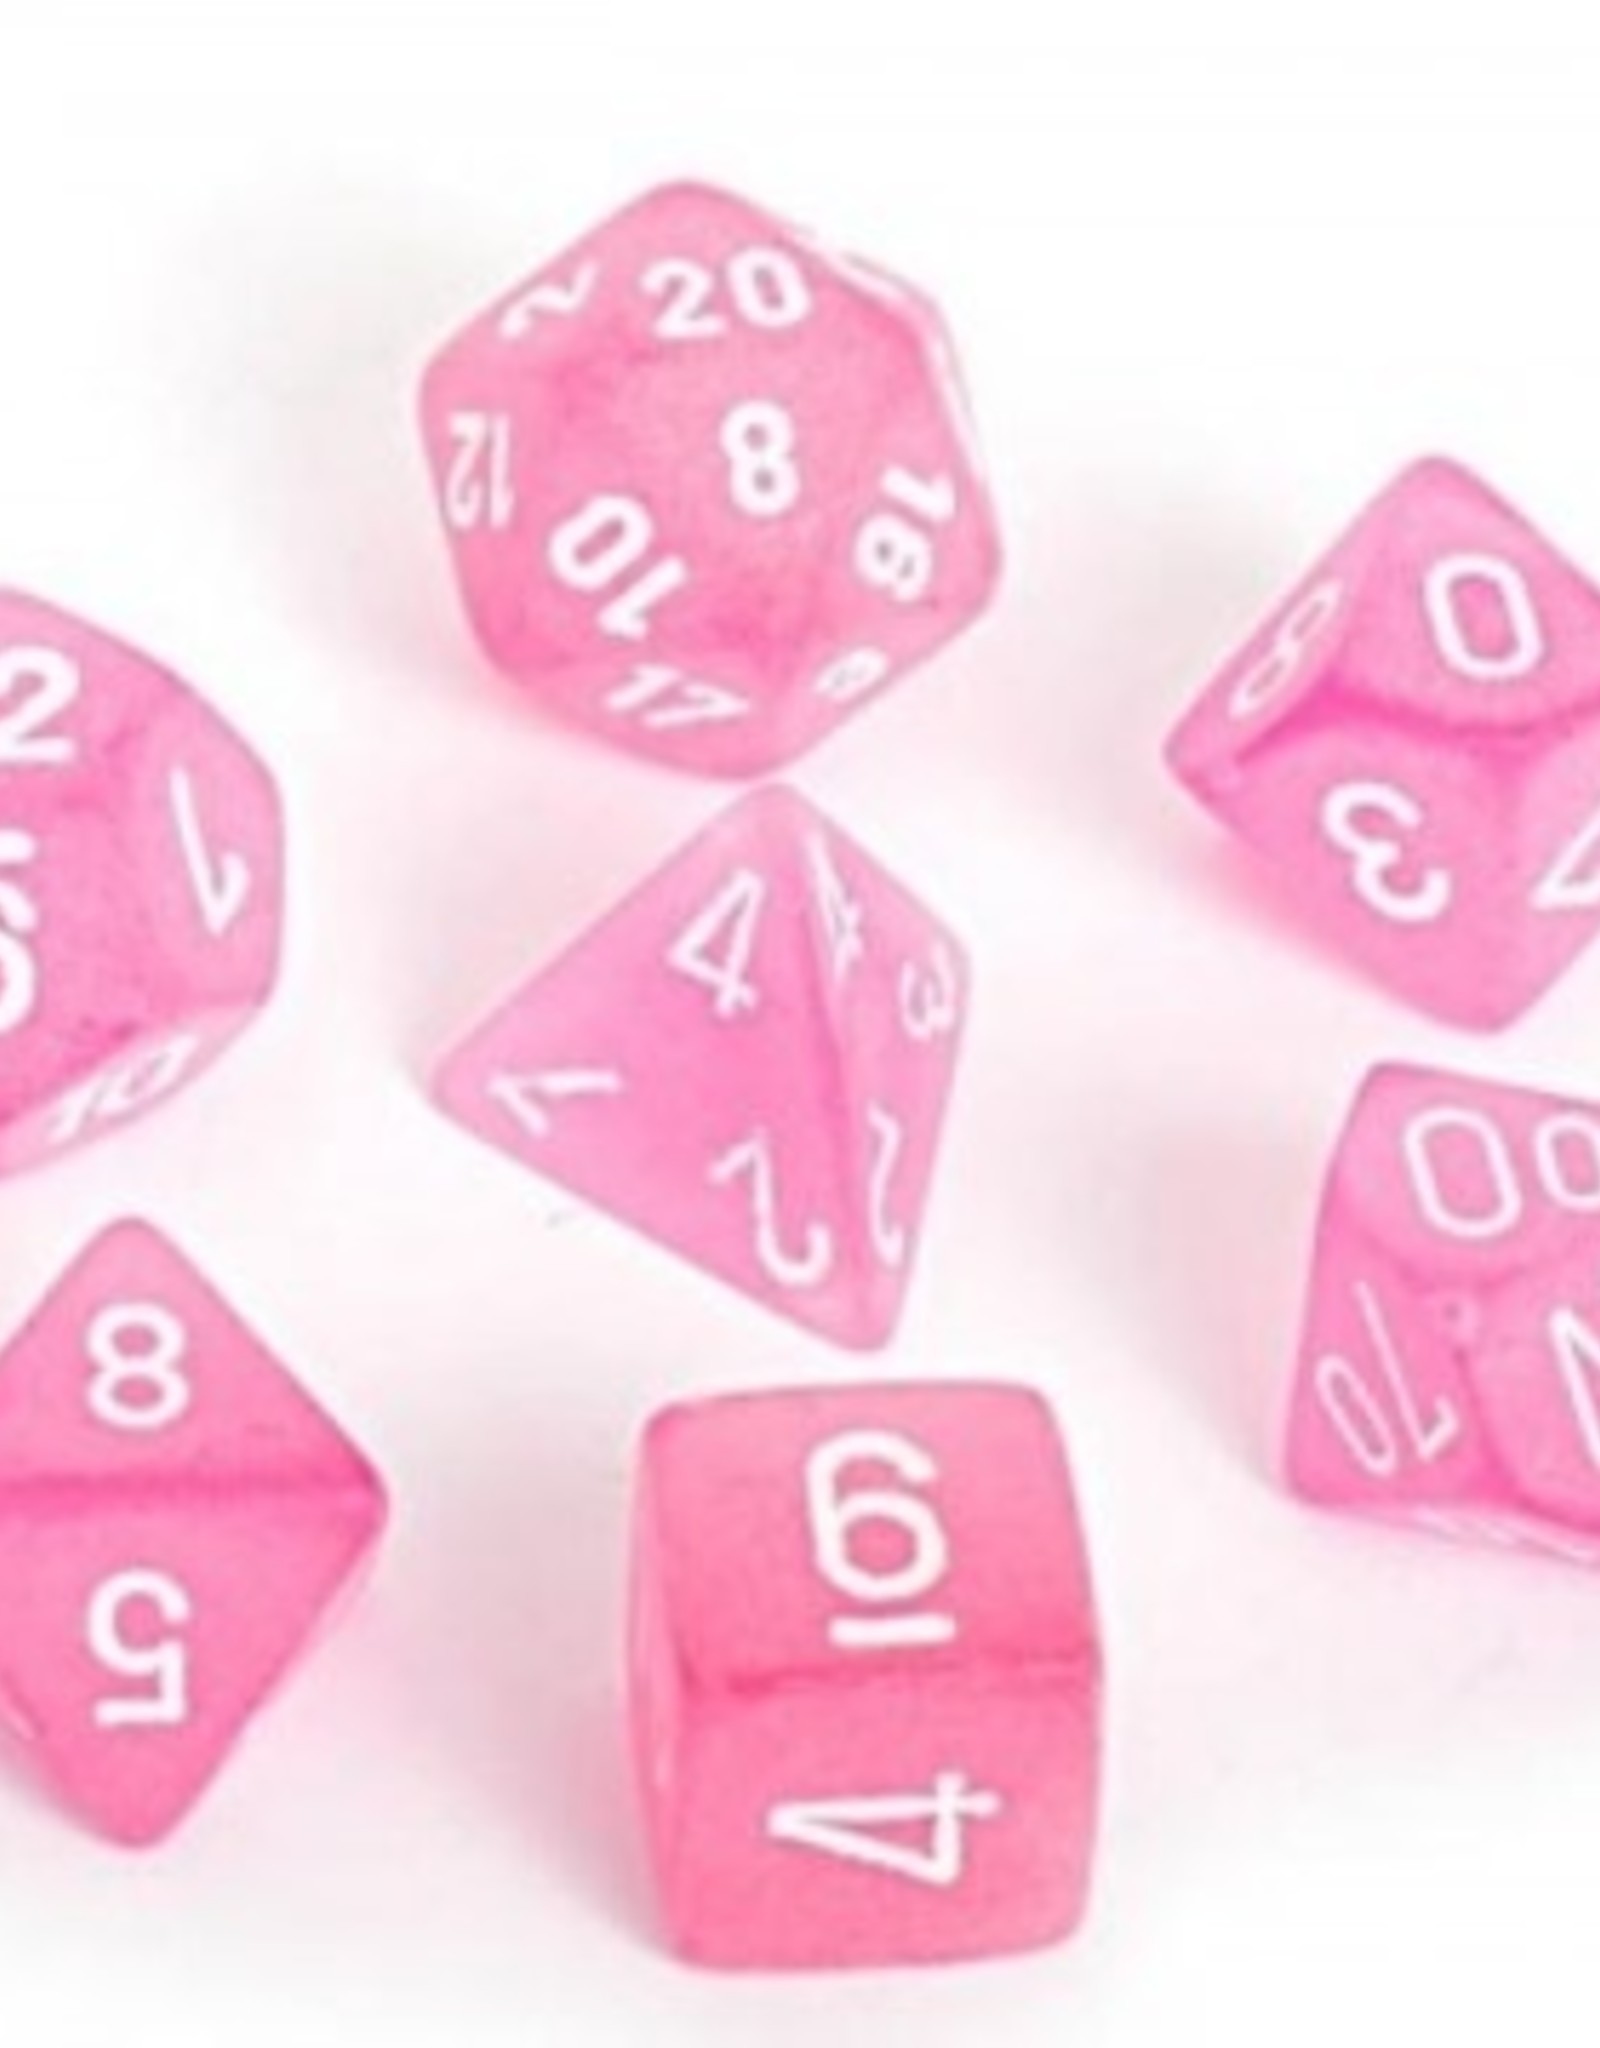 Chessex Chessex 7-Die set Frosted - Pink/White